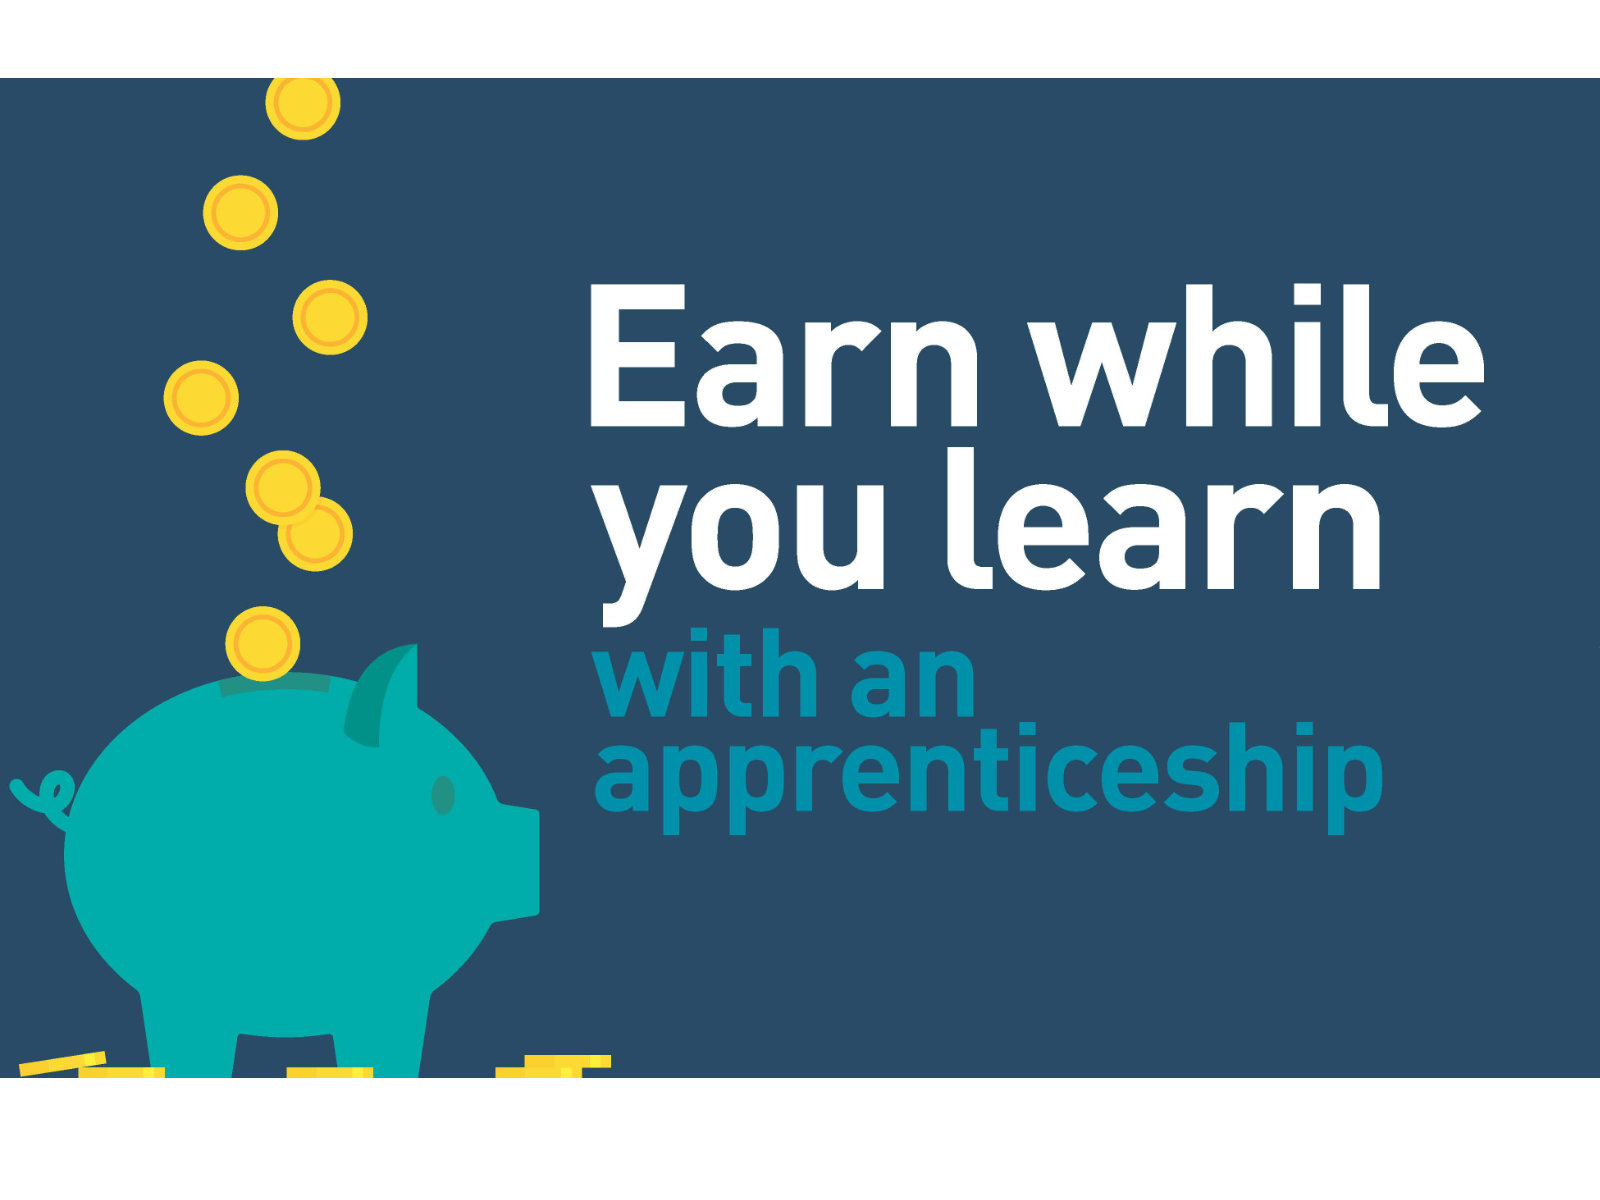 Earn while you learn with an apprenticeship